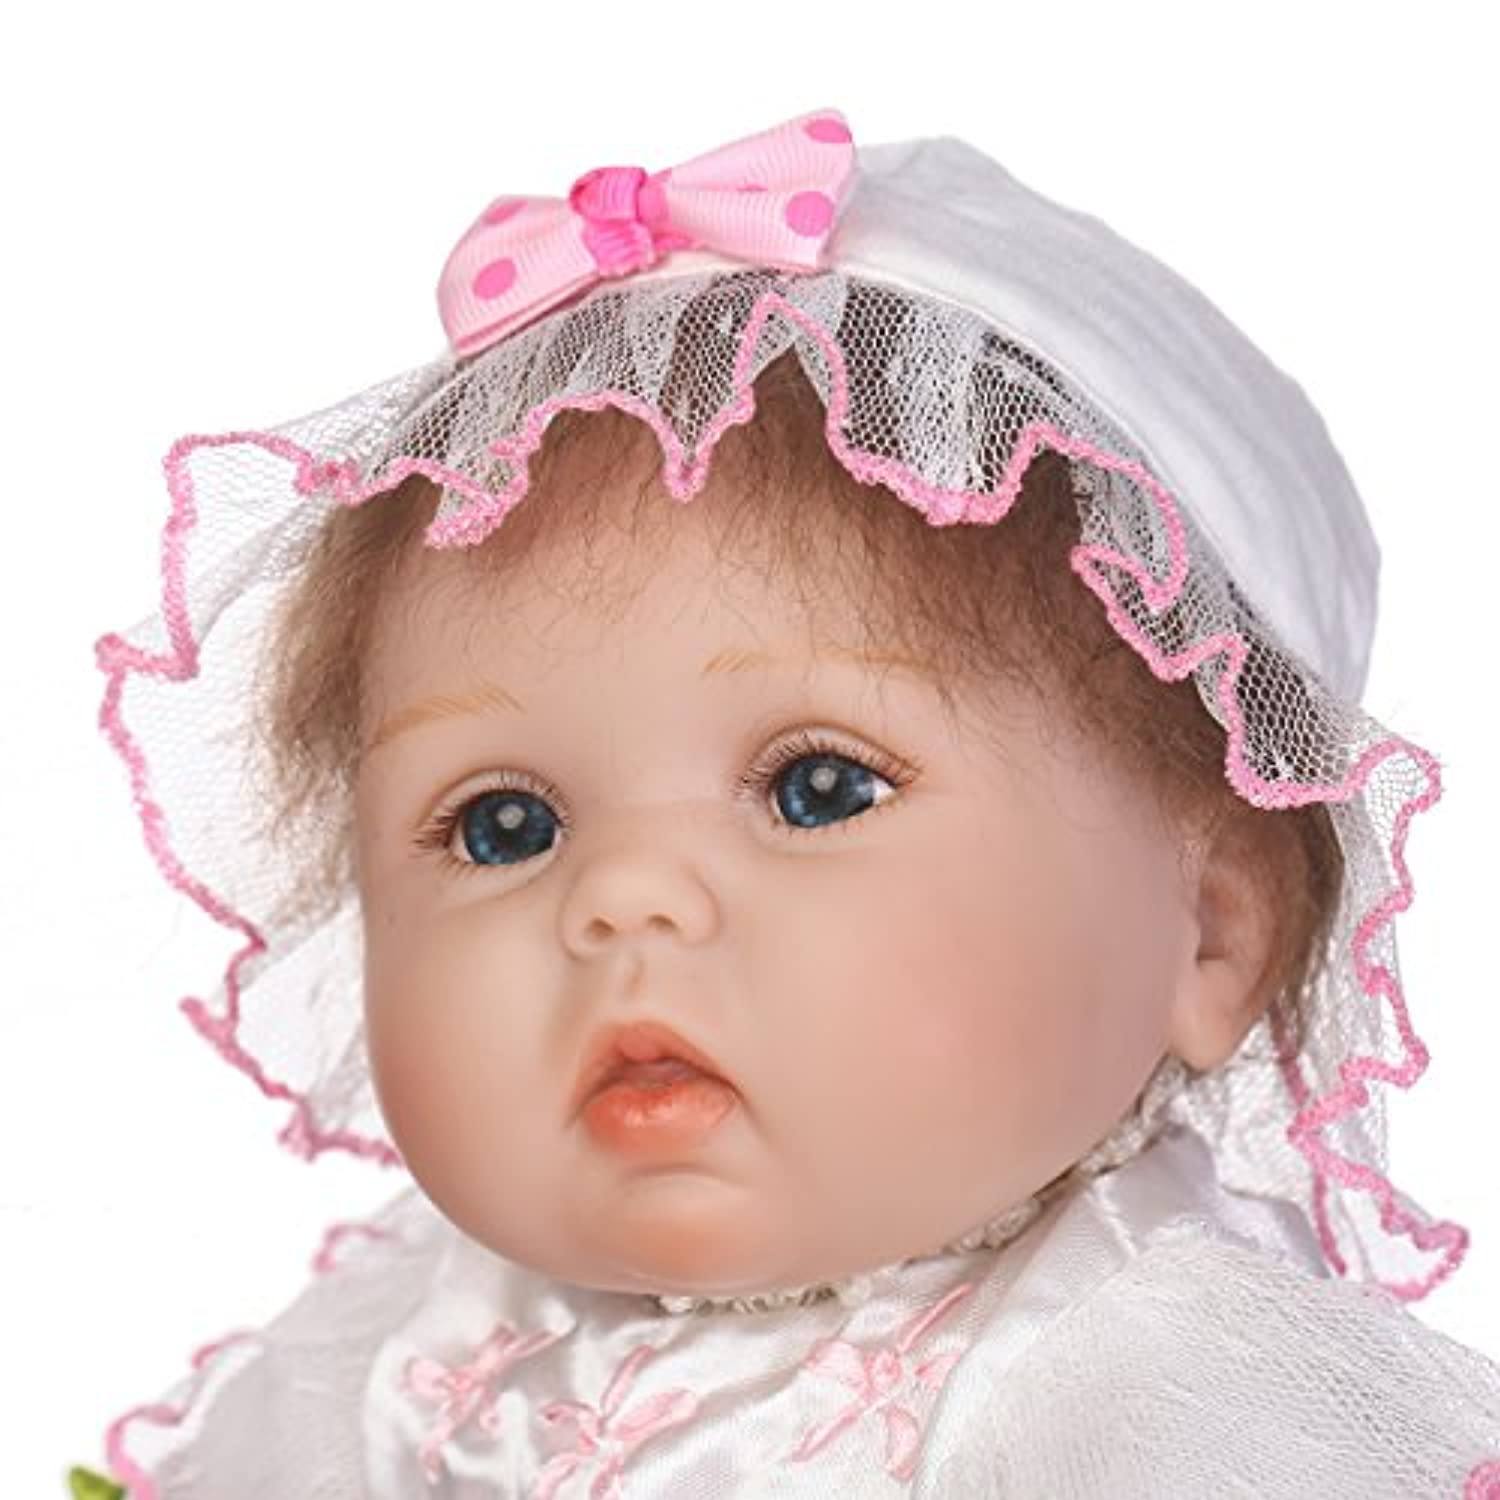 SanyDoll Rebornベビー人形ソフトSilicone 18インチ45 cm磁気Lovely Lifelike Cute Lovely Baby b0763lhyhr